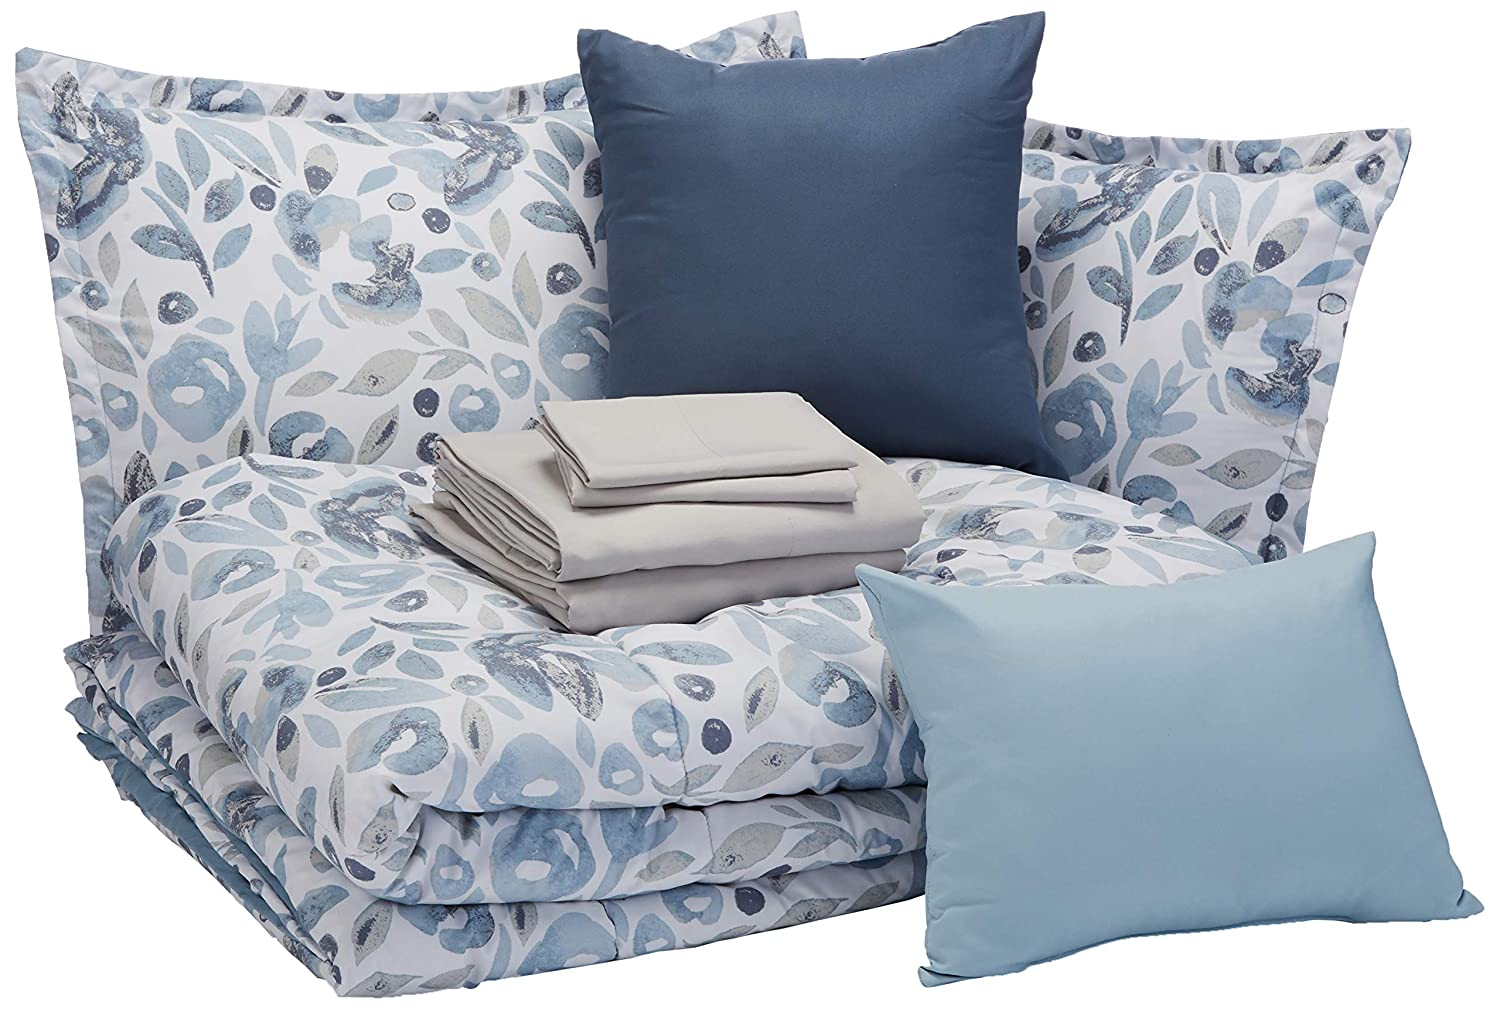 AmazonBasics 10-Piece Comfoter Bedding Set, Full / Queen, Blue Watercolor Floral, Microfiber, Ultra-Soft